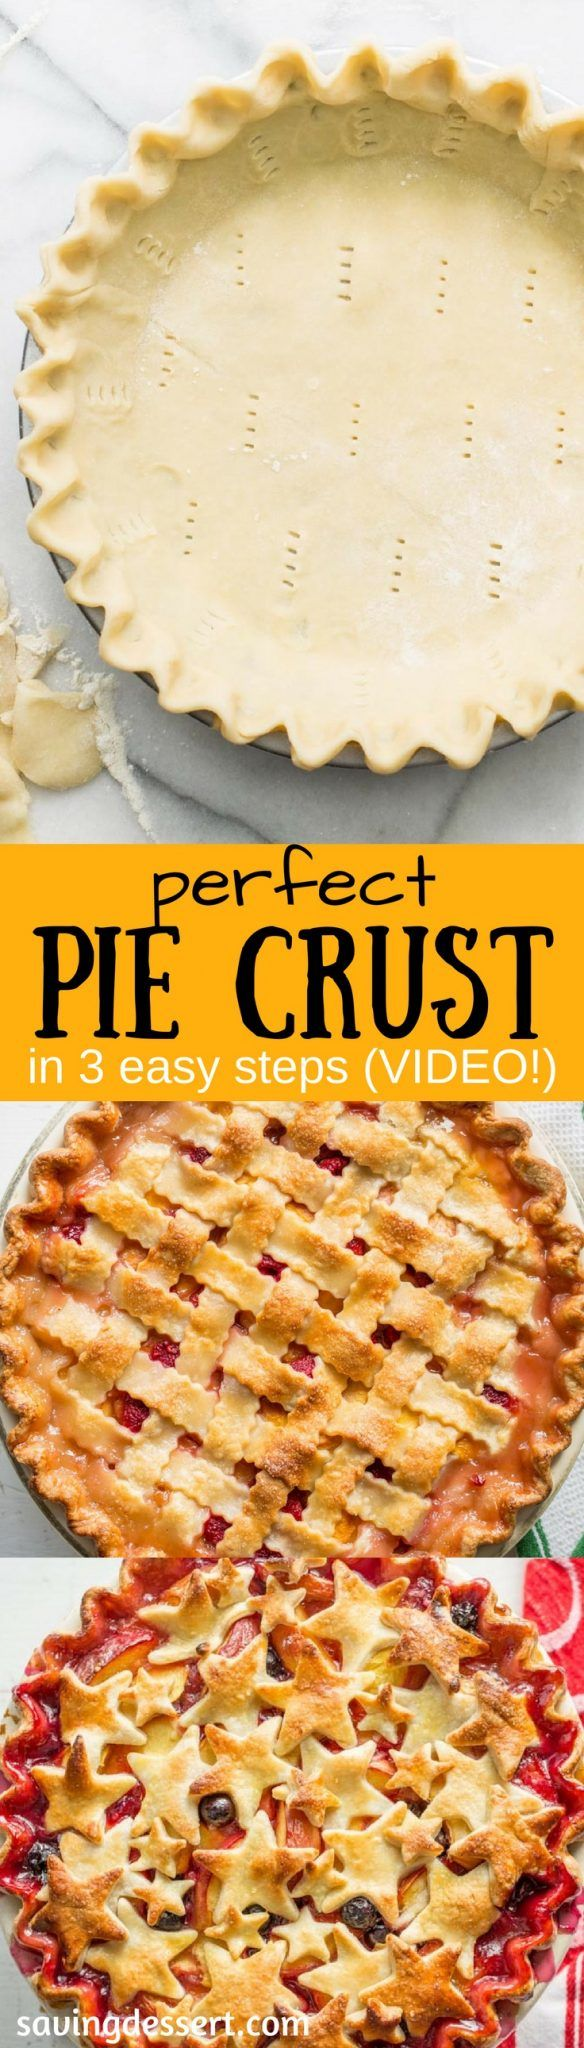 Perfect Pie Crust Recipe in 3-easy steps - With just a little patience and practice, you can make flaky, delicious pastry for all your favorite pie recipes. #pie #piecrust #piepastry #dessertpies #savingroomfordessert #savorypies